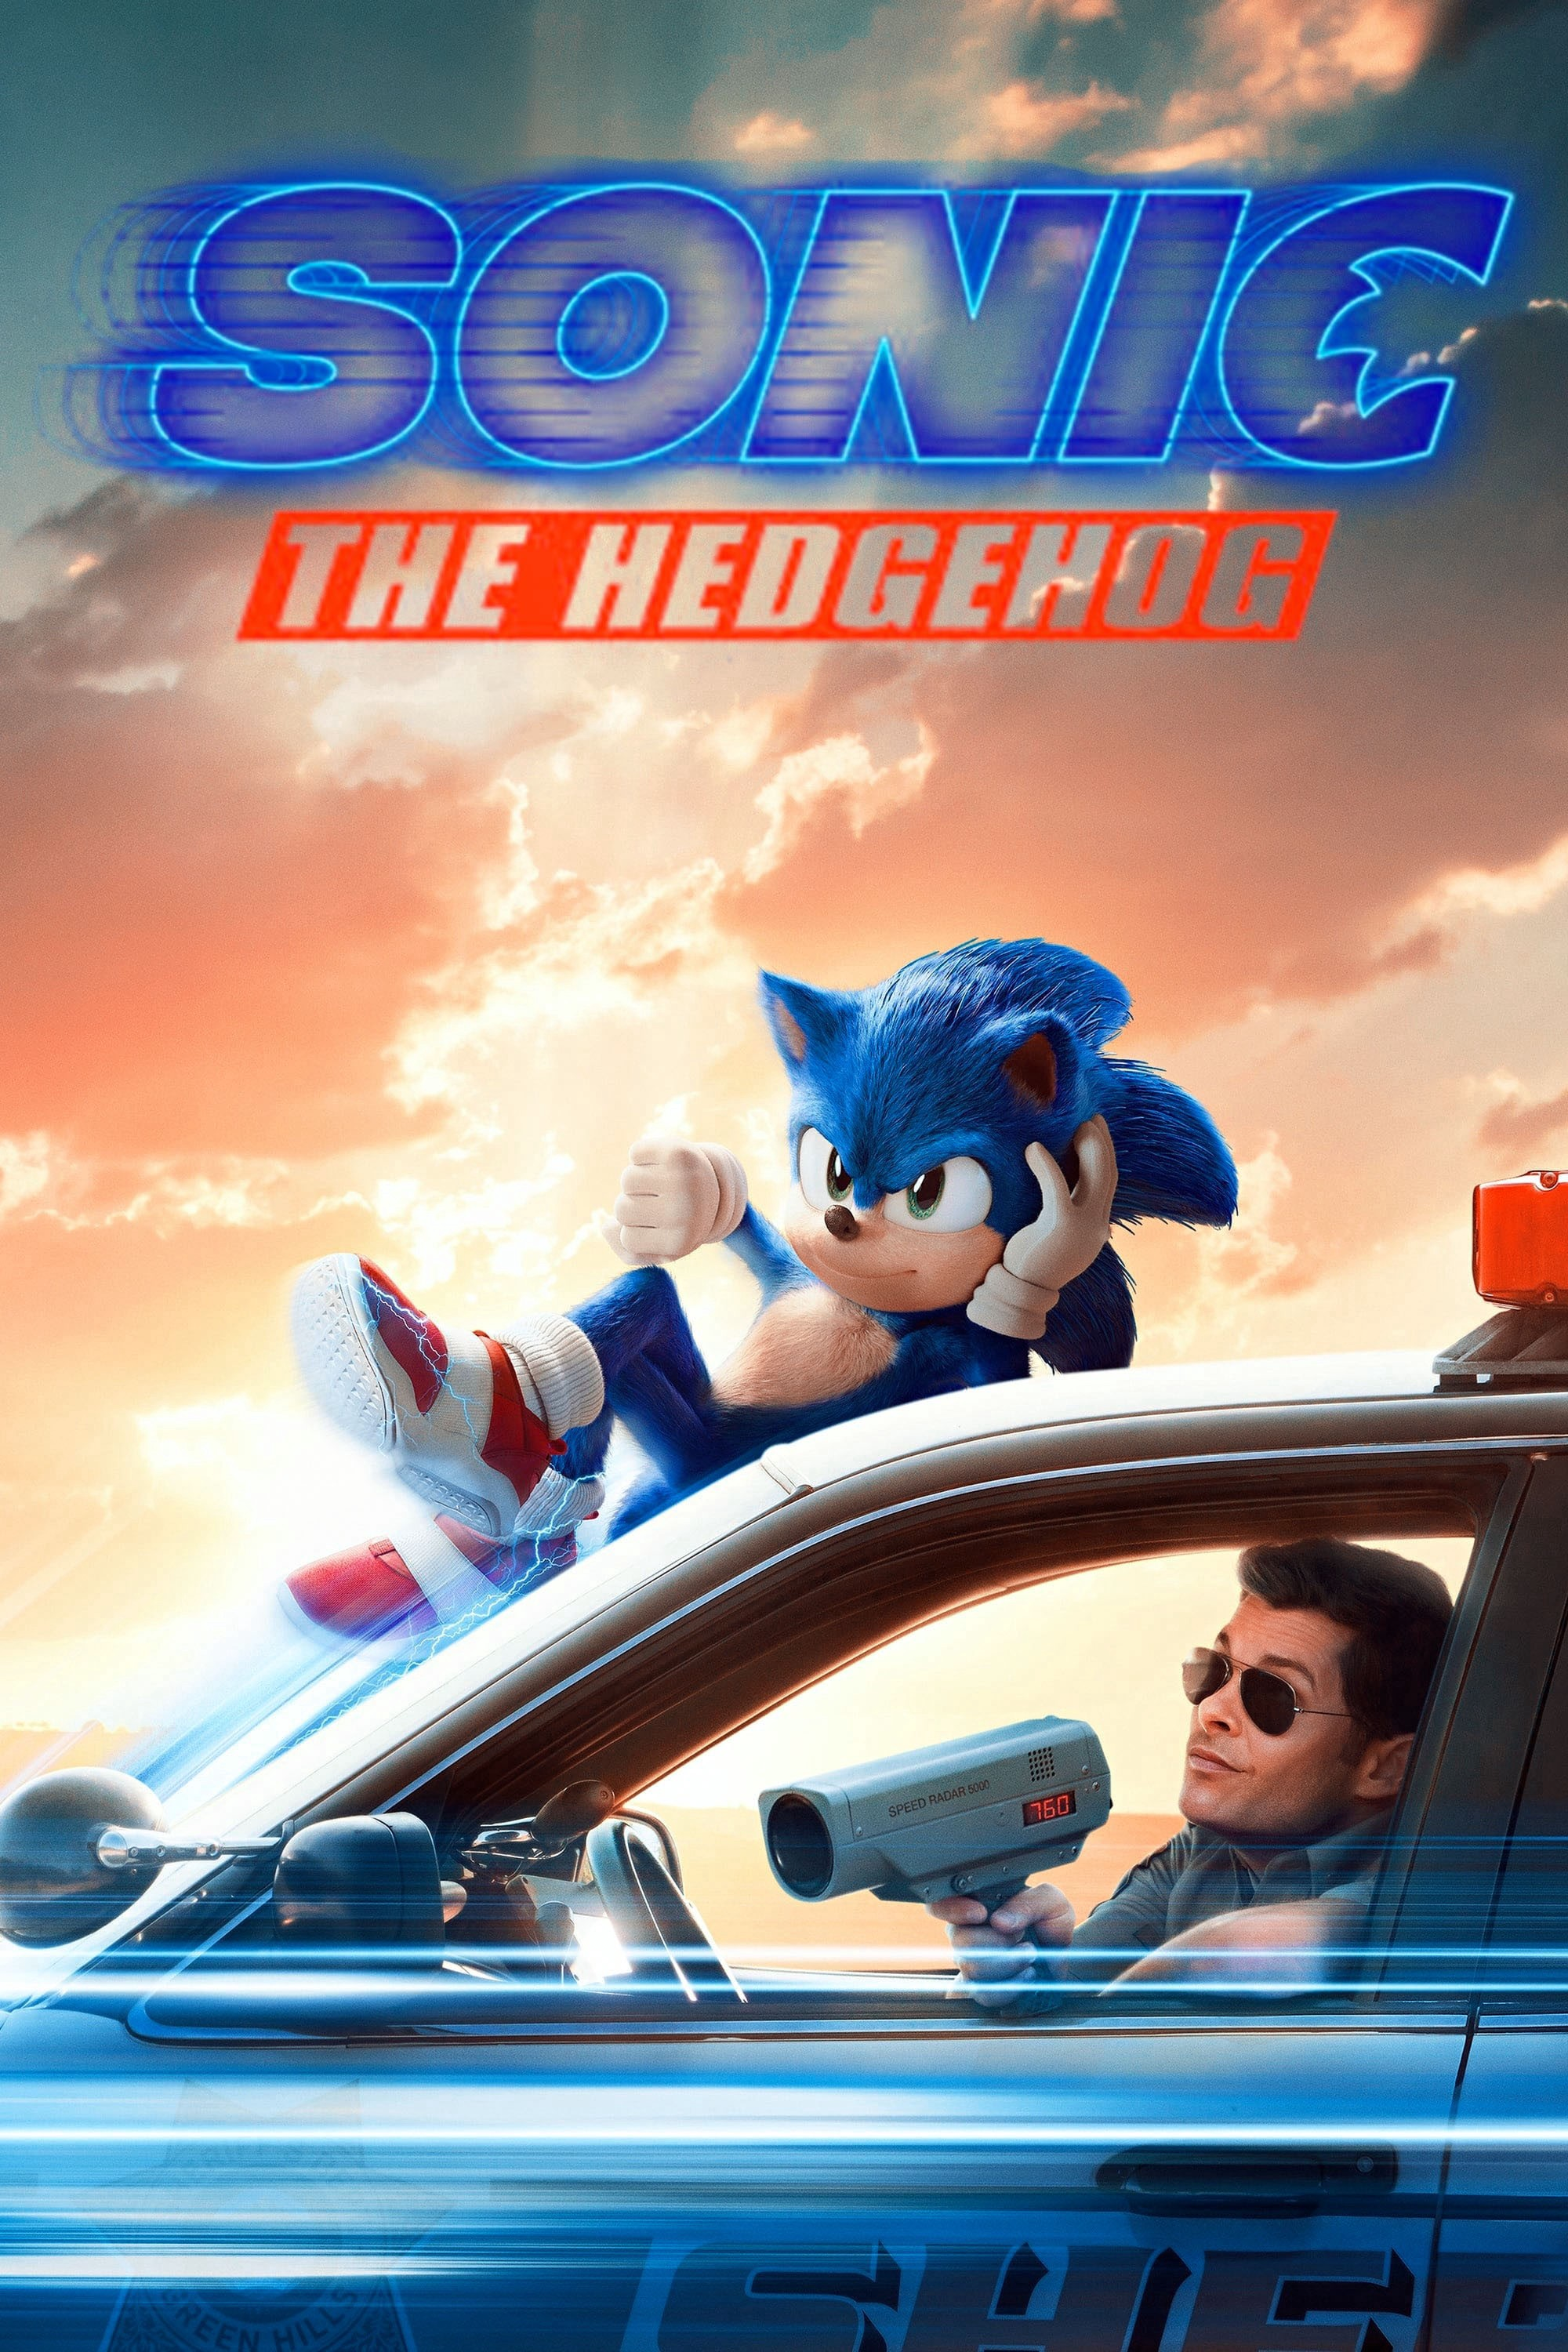 123movies Uhd Blu Ray Watch Sonic The Hedgehog 2020 Online Full Movie Riddit By All Ufc Live Medium